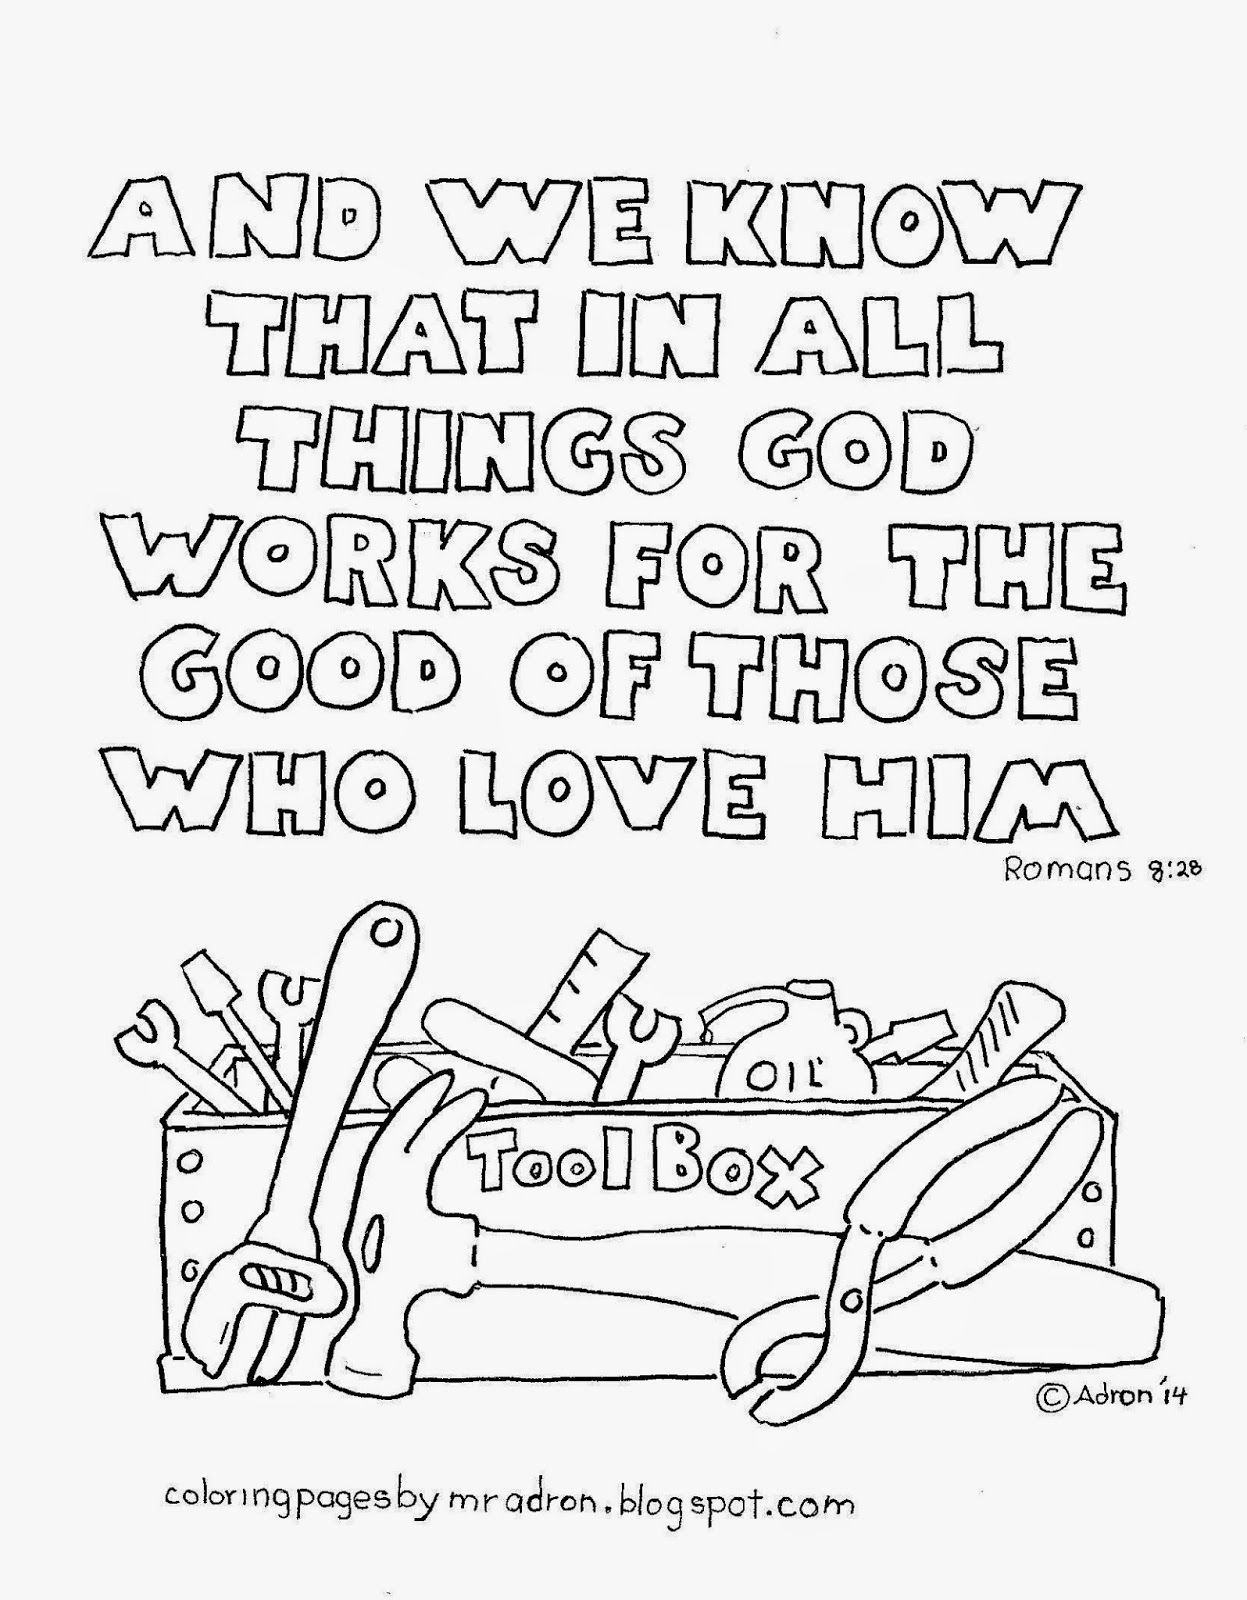 Coloring Pages For Kids By Mr Adron In Everything God Works For